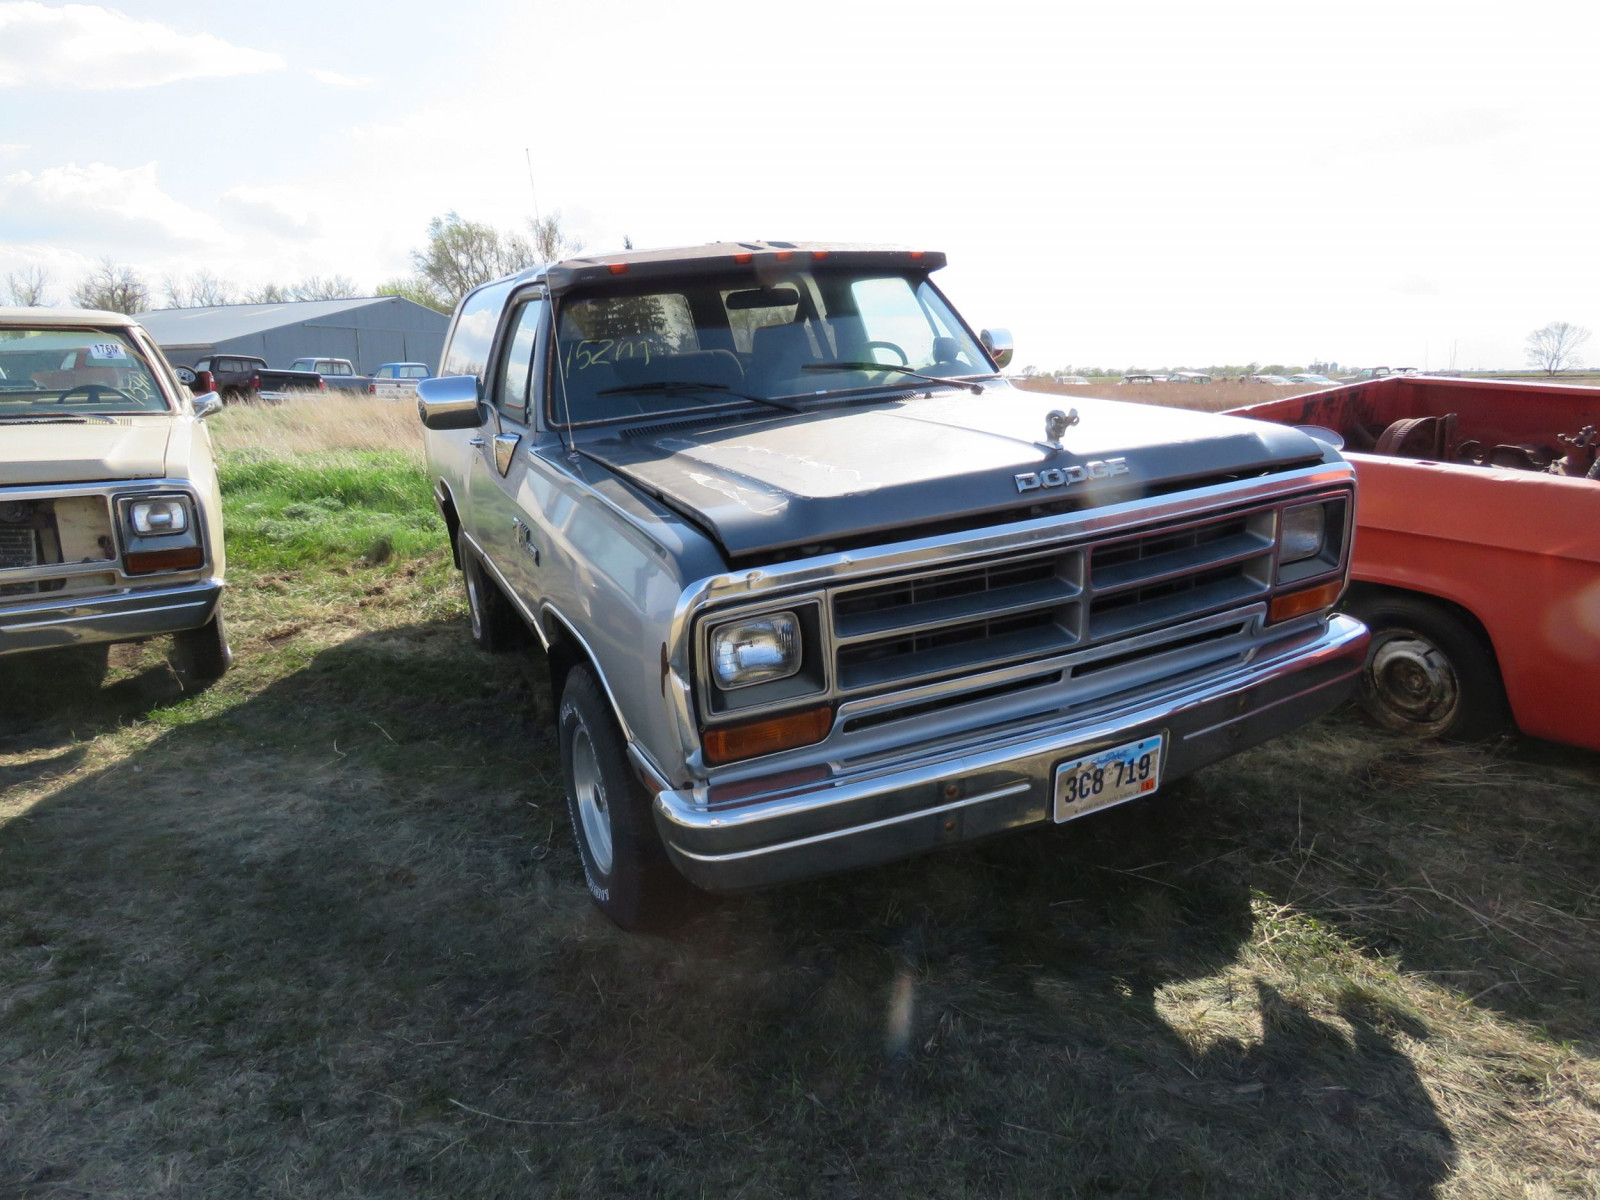 1990 Dodge Ram Charger Pickup - Image 2